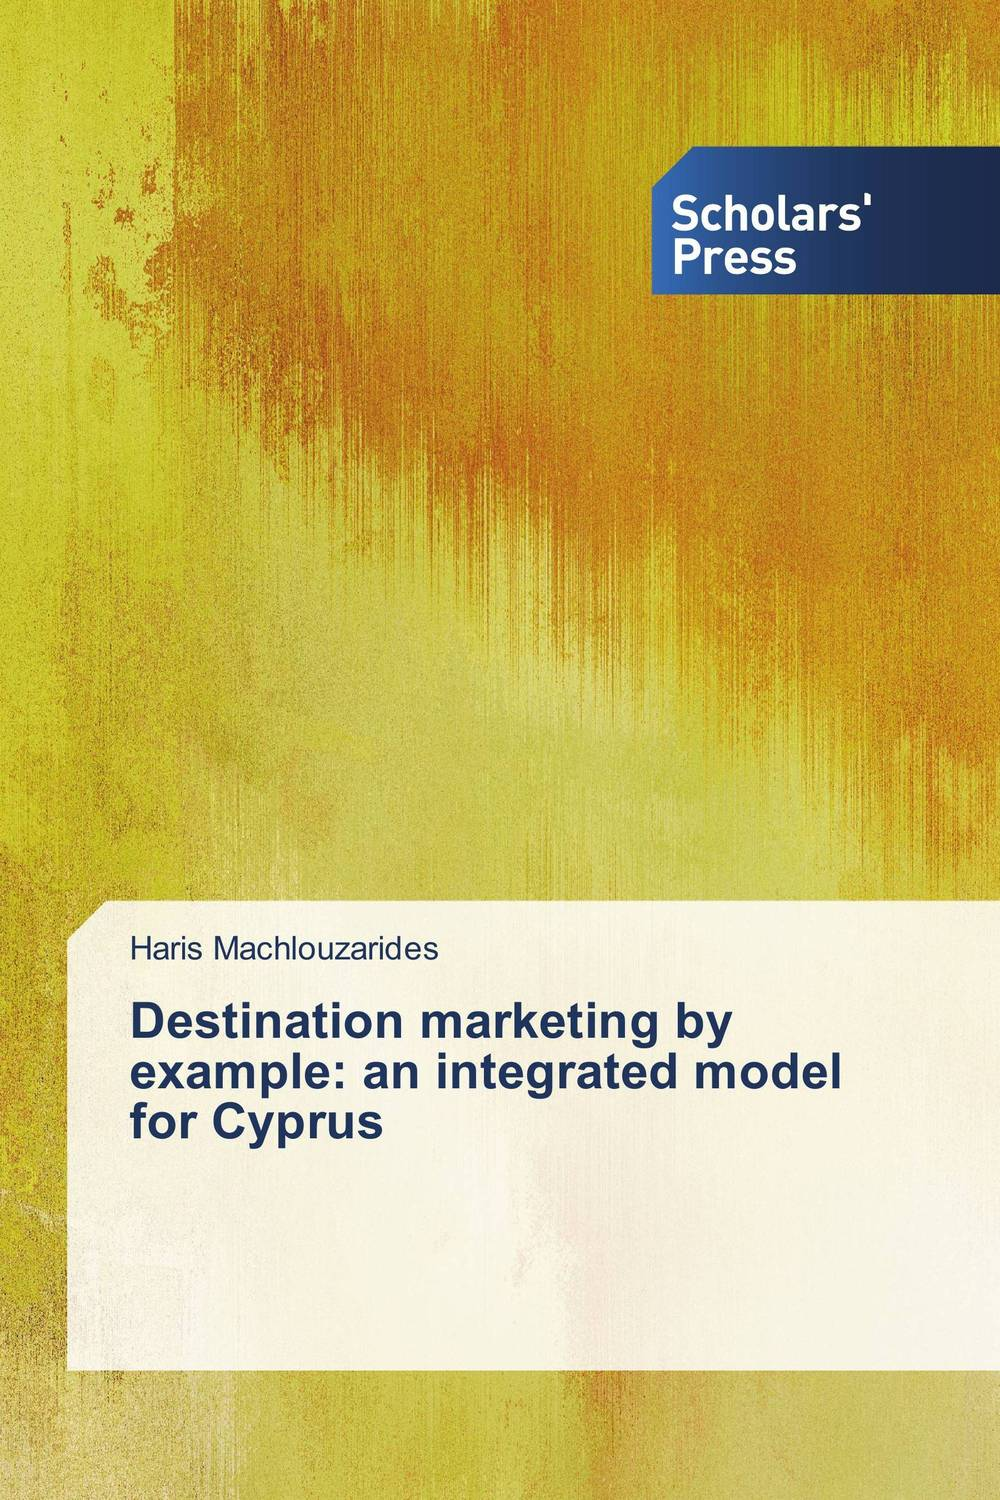 Destination marketing by example: an integrated model for Cyprus marketing